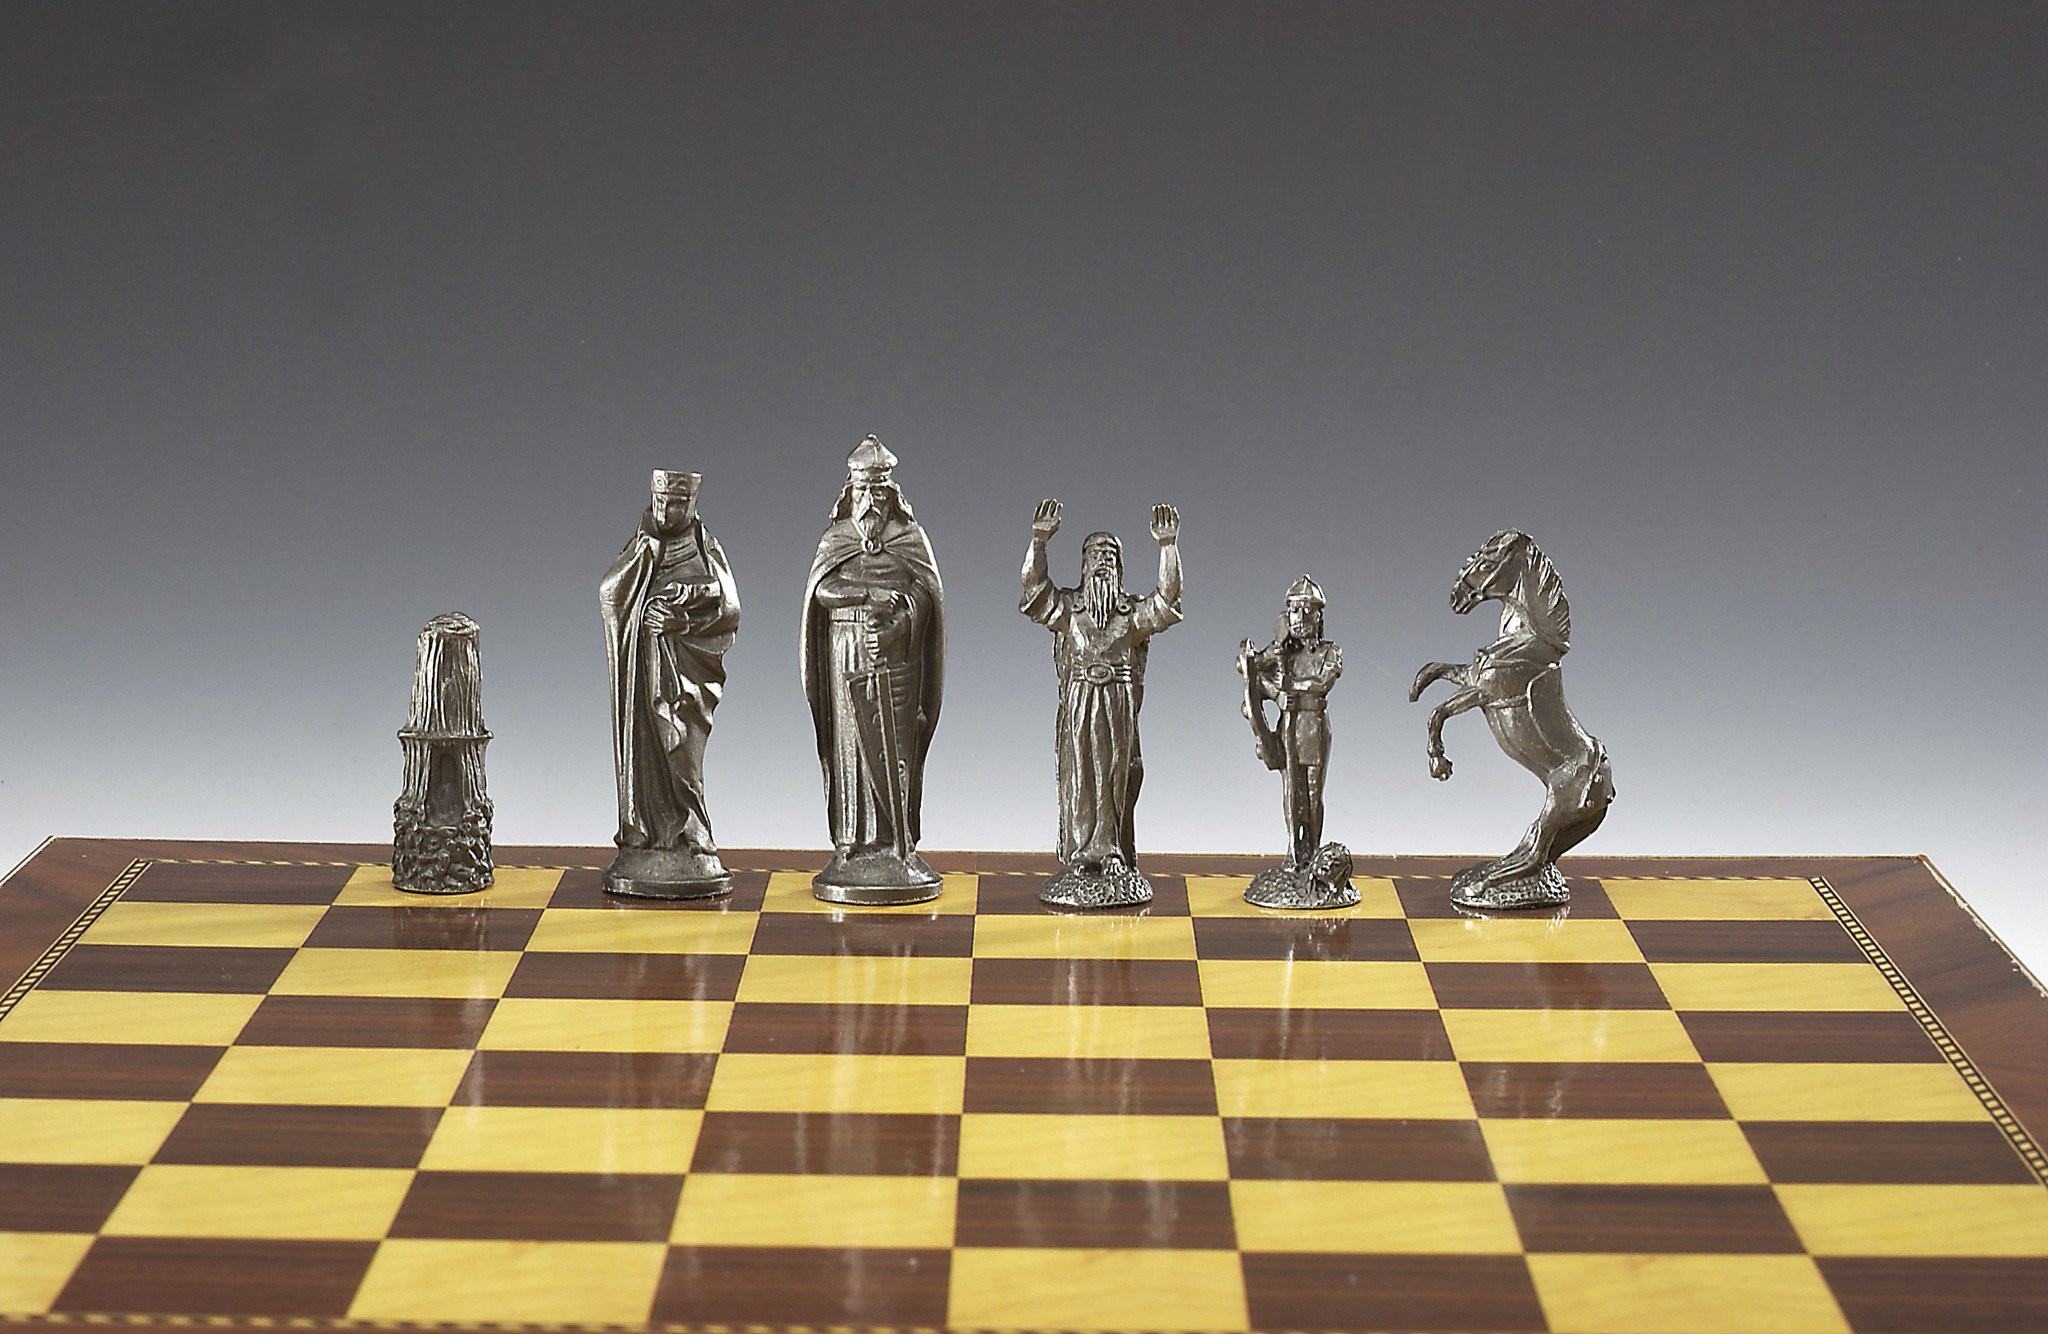 Medieval chess board photo